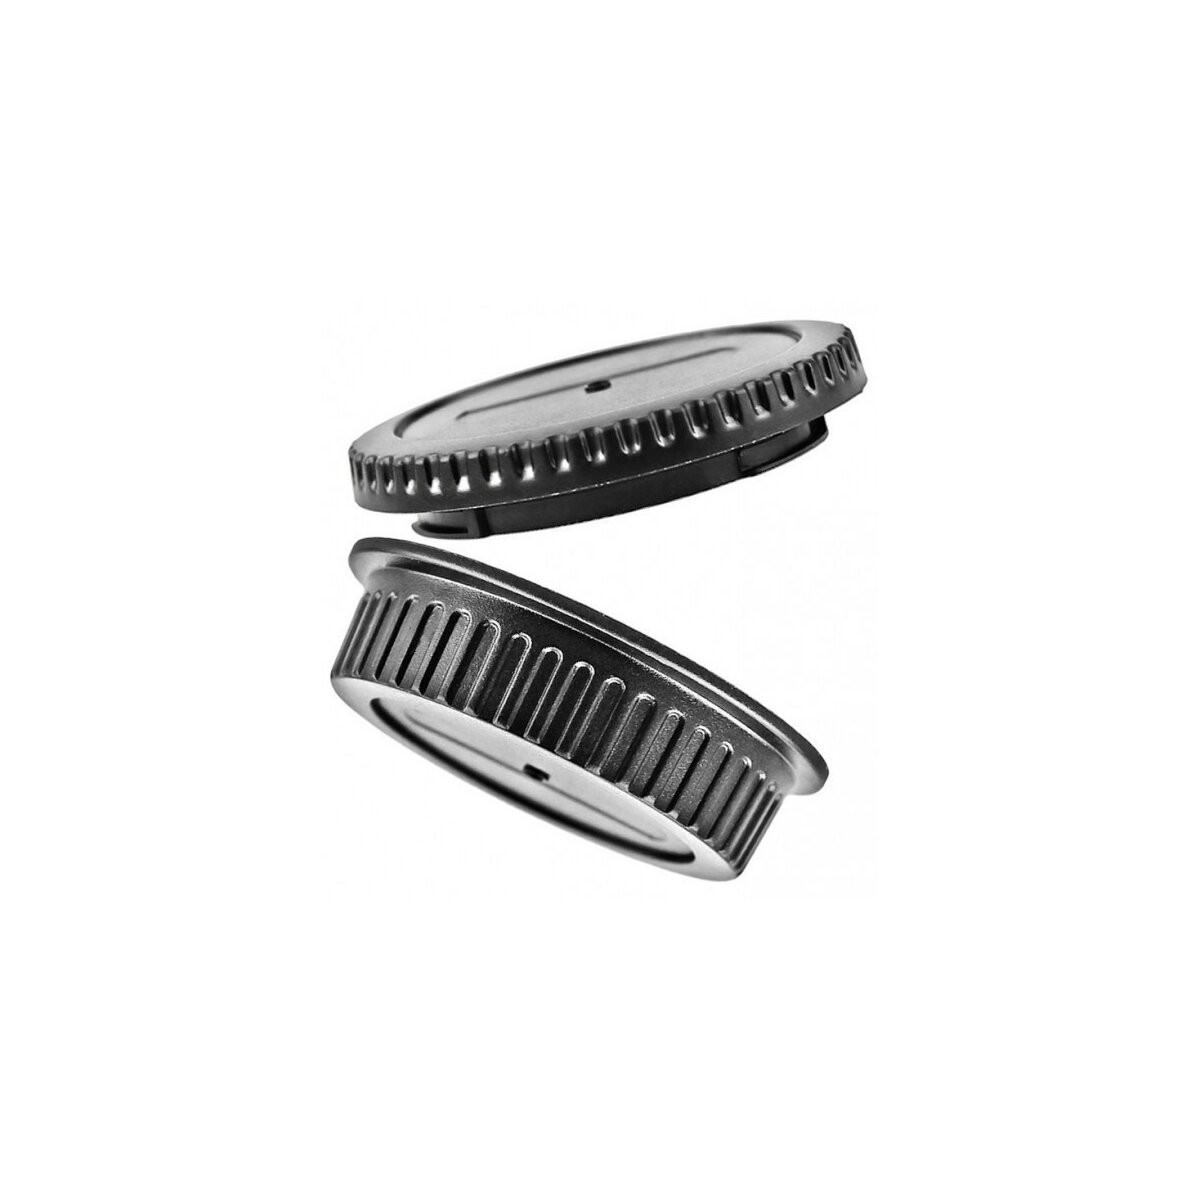 Protective Caps for Camera Body and Lens of Canon EOS DSLR SLR Cameras